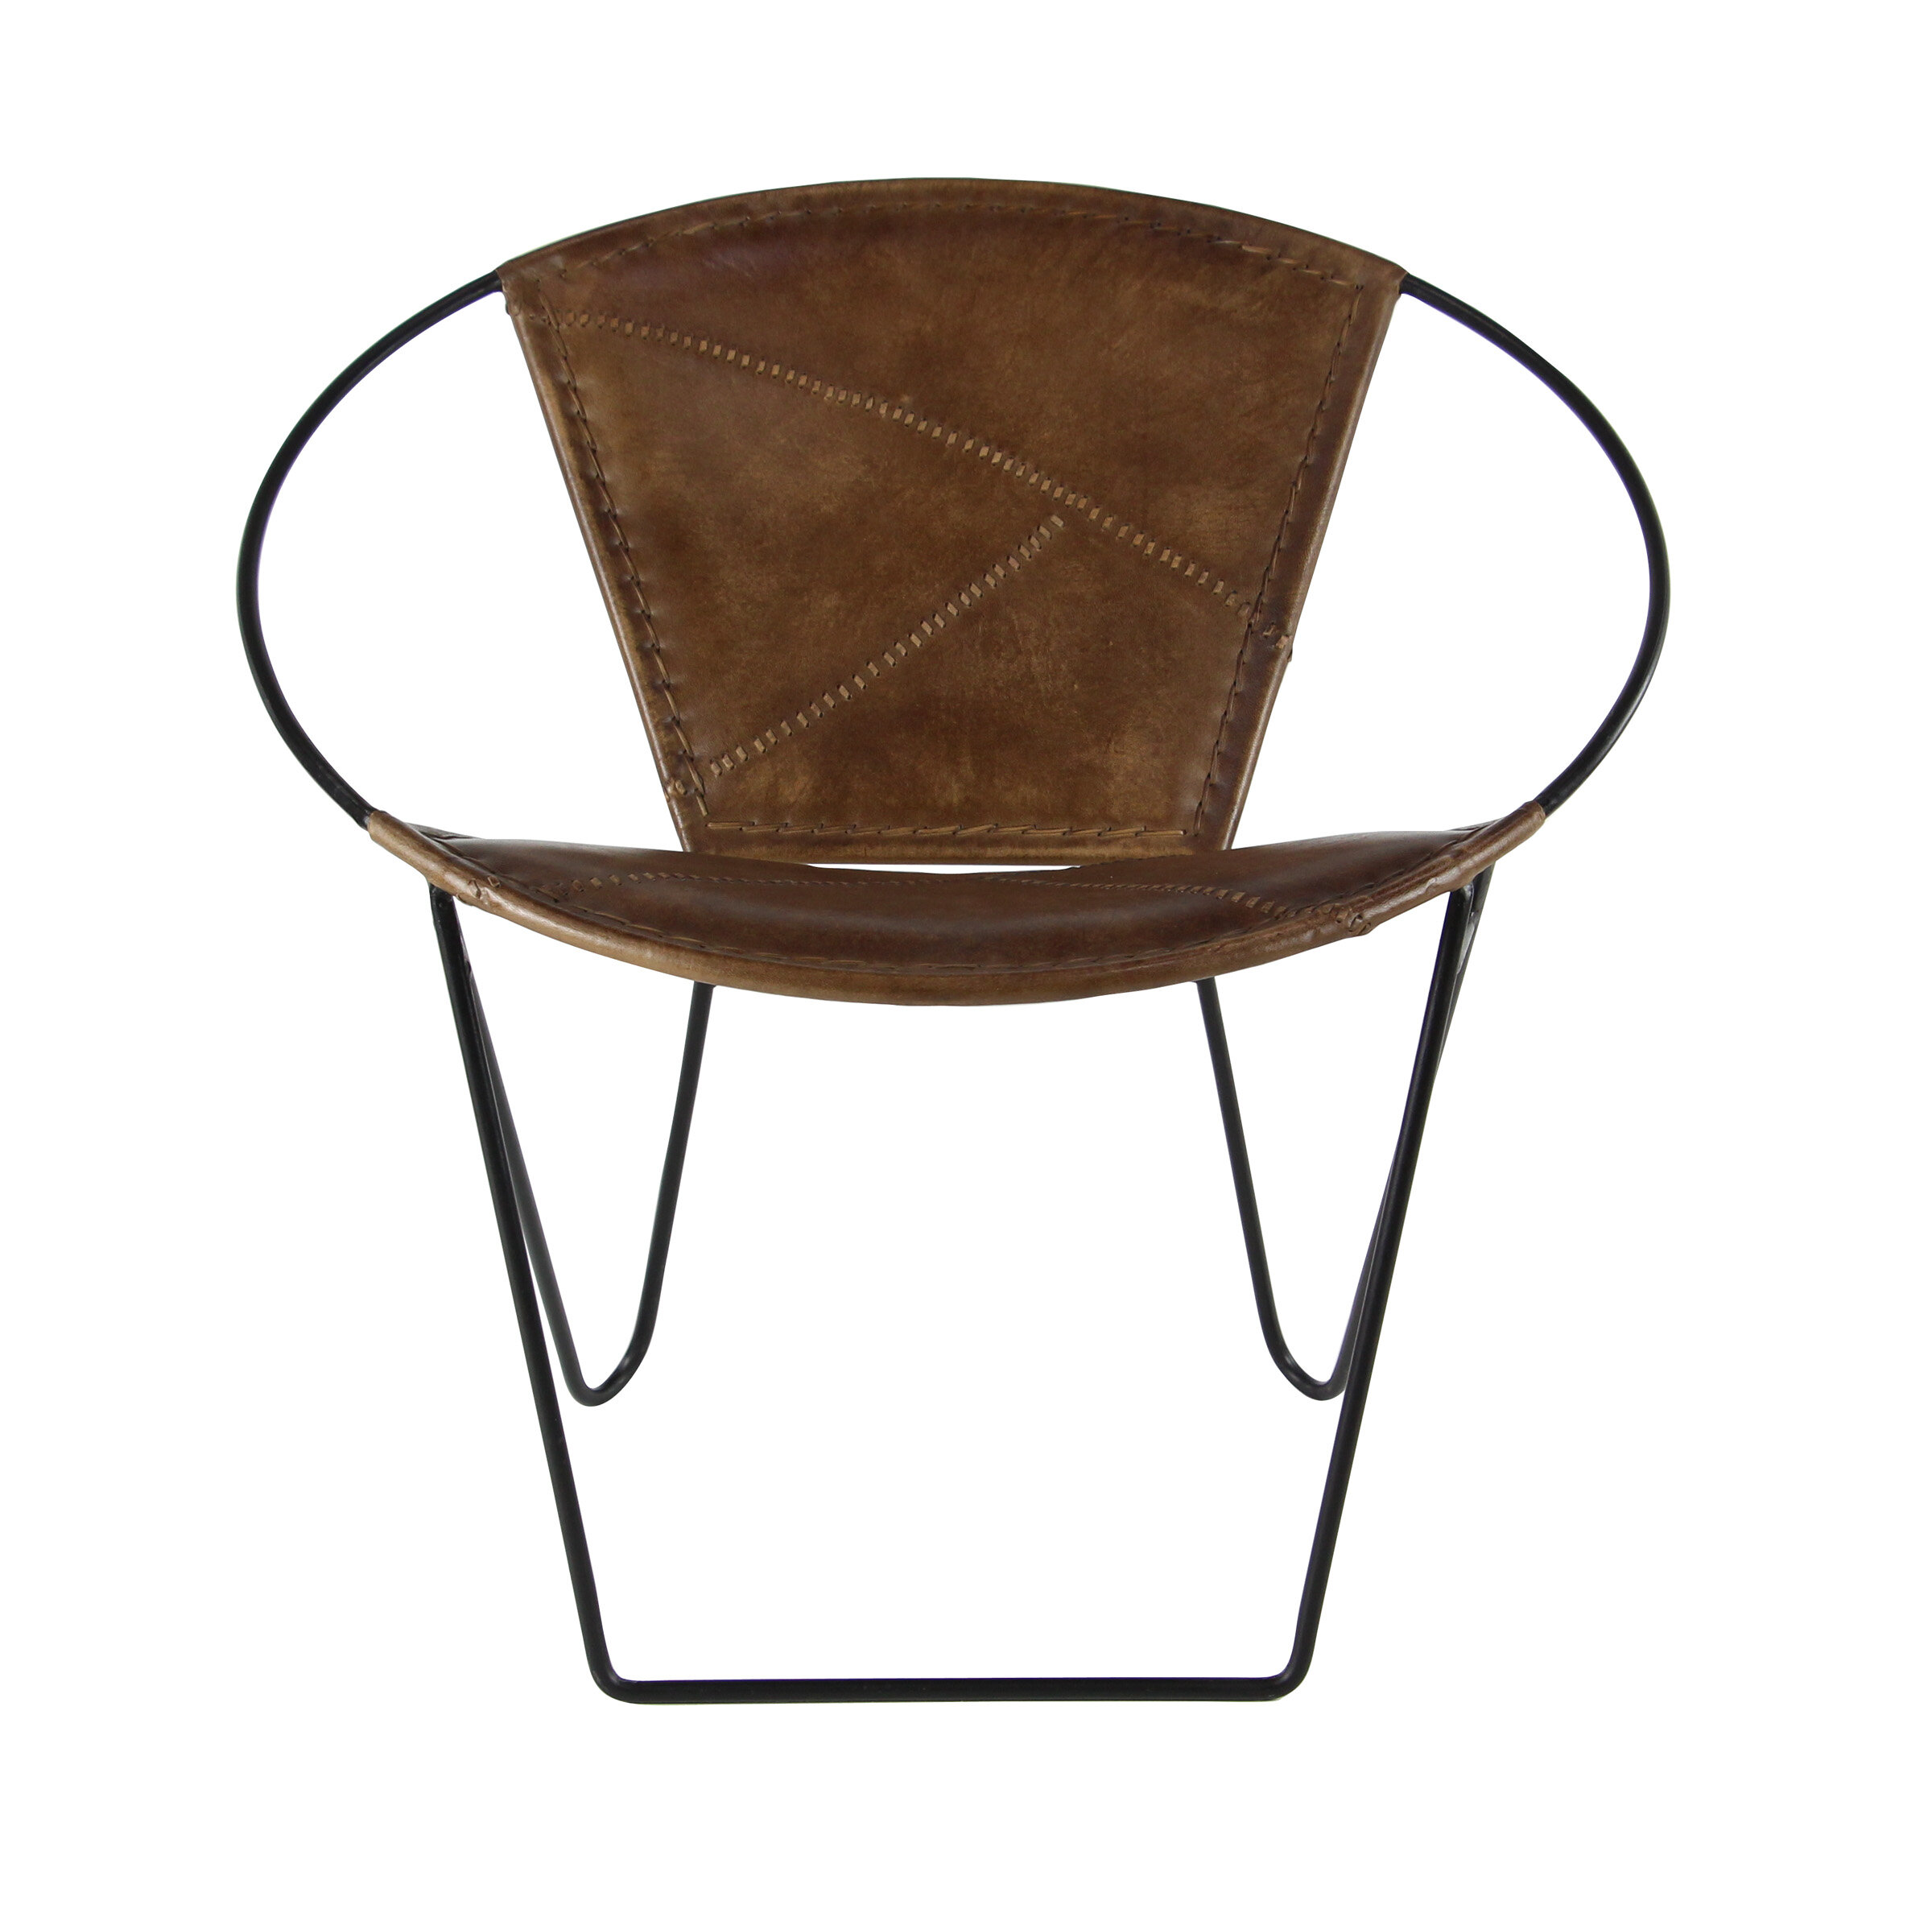 Merveilleux Union Rustic Wendell Modern Papasan Chair | Wayfair